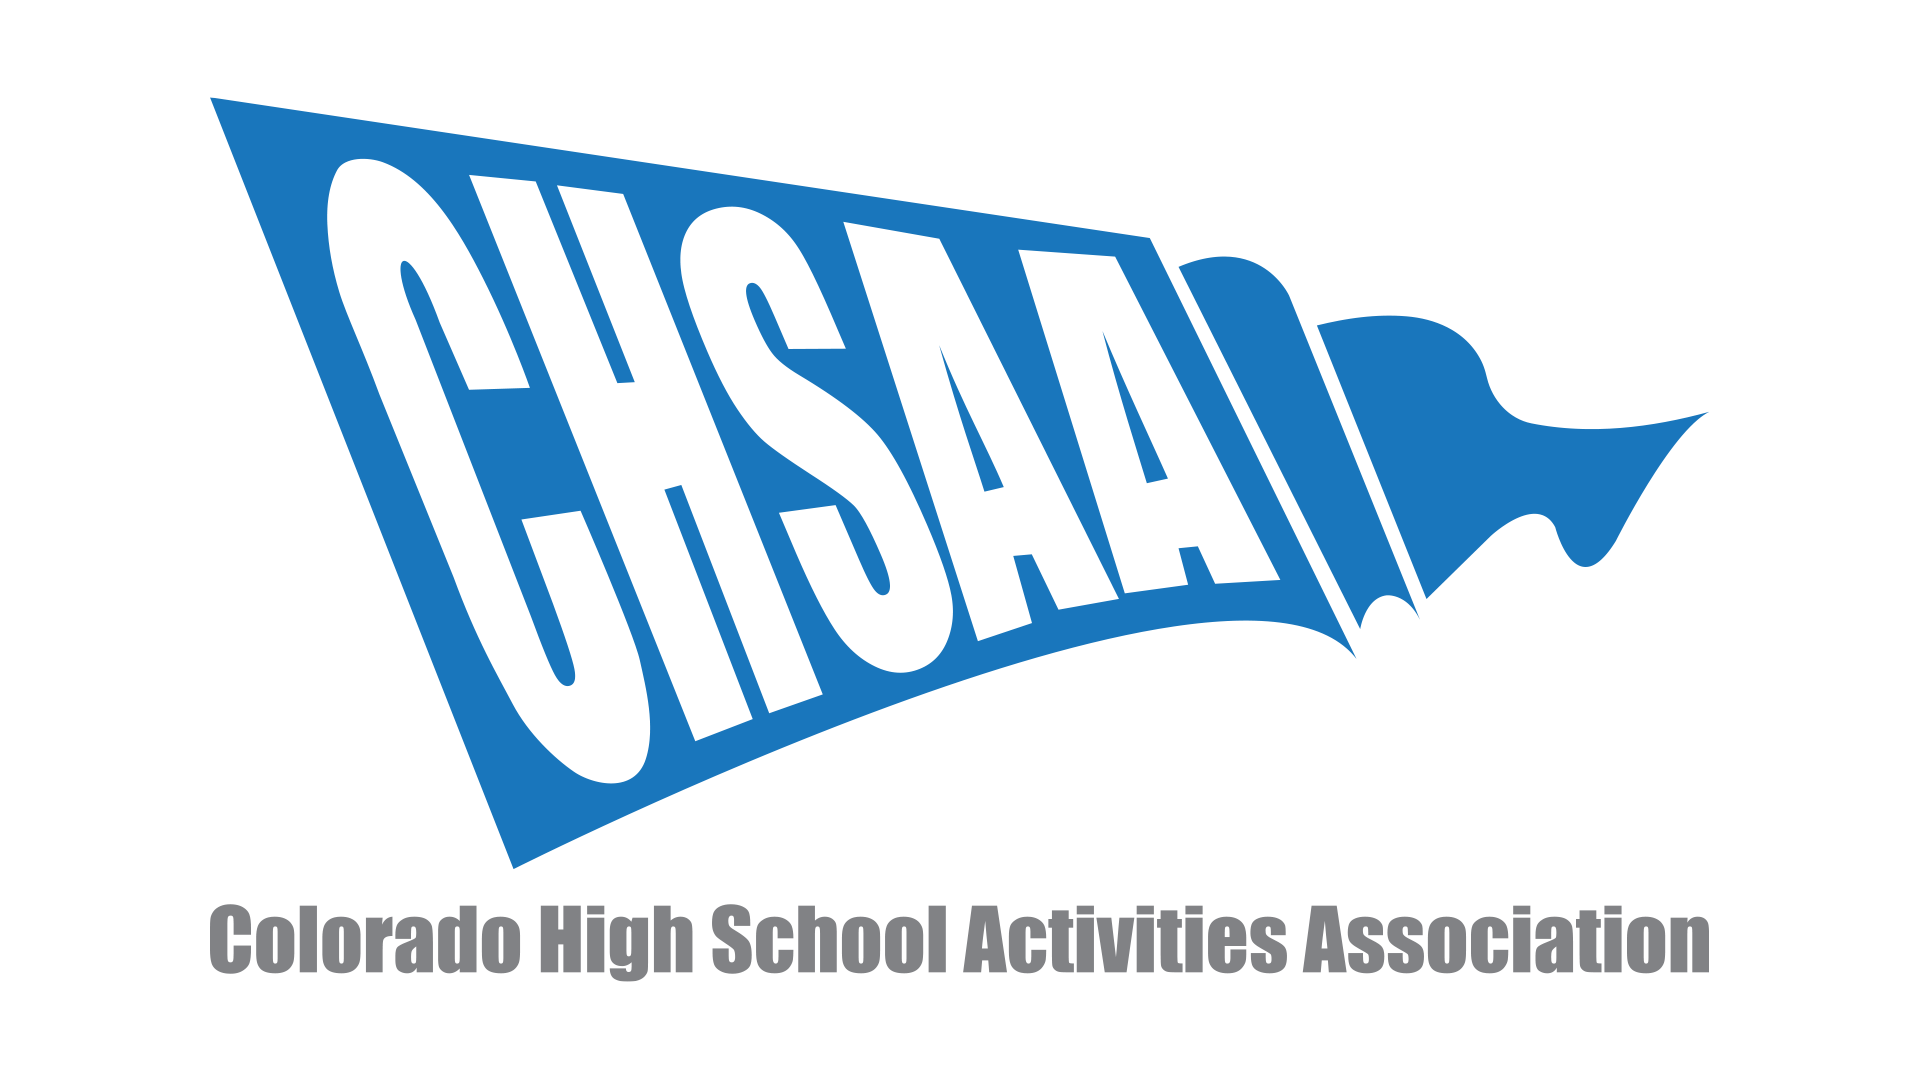 Colorado High School Activities Association